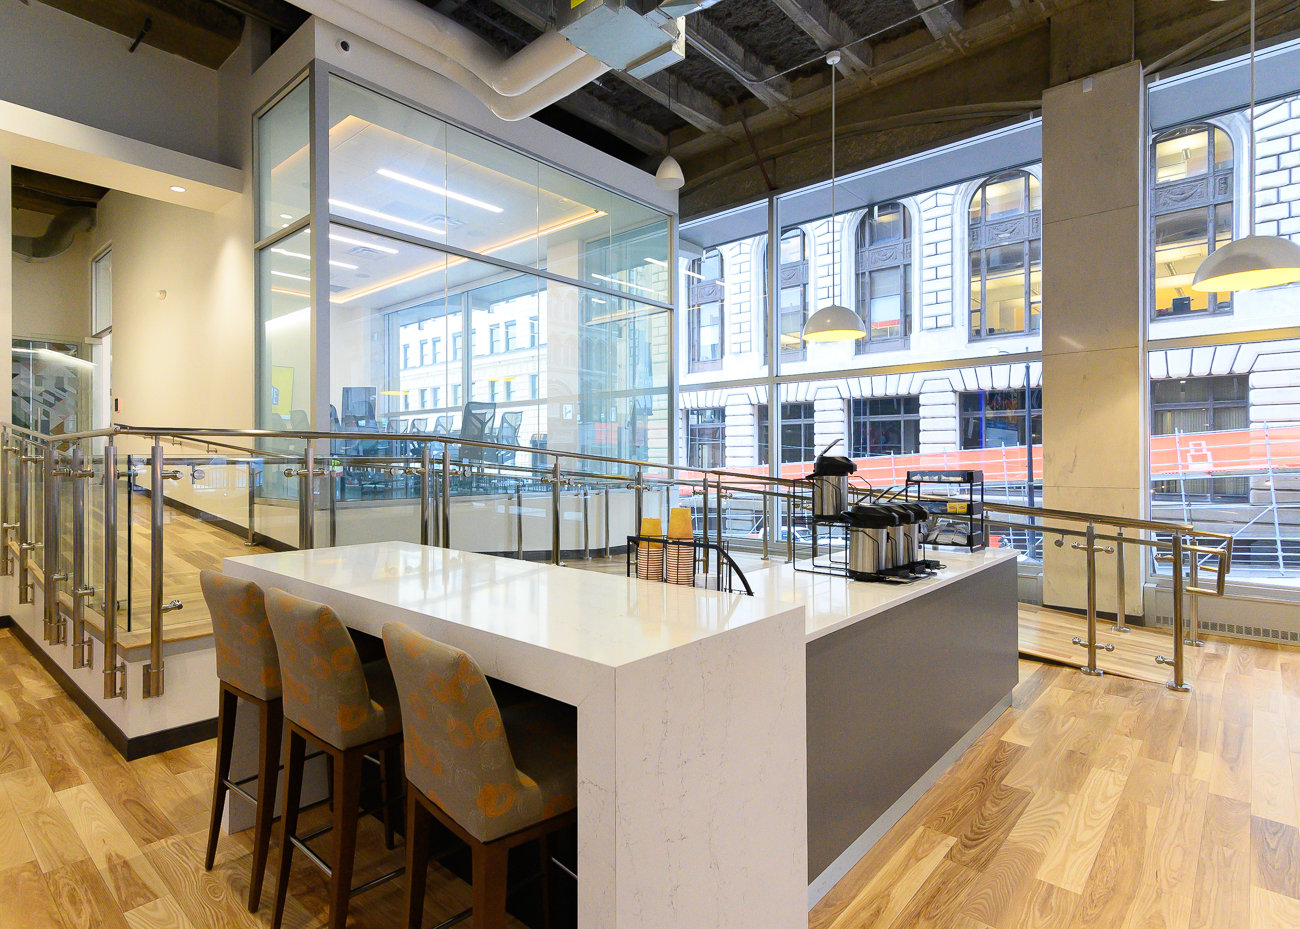 A high-top bar area sits adjacent to the coffee bar. A handicap-accessible ramp snakes around it to allow wheelchair users access to the two conference rooms in the back of the space. / Image: Phil Armstrong, Cincinnati Refined // Published: 2.25.20